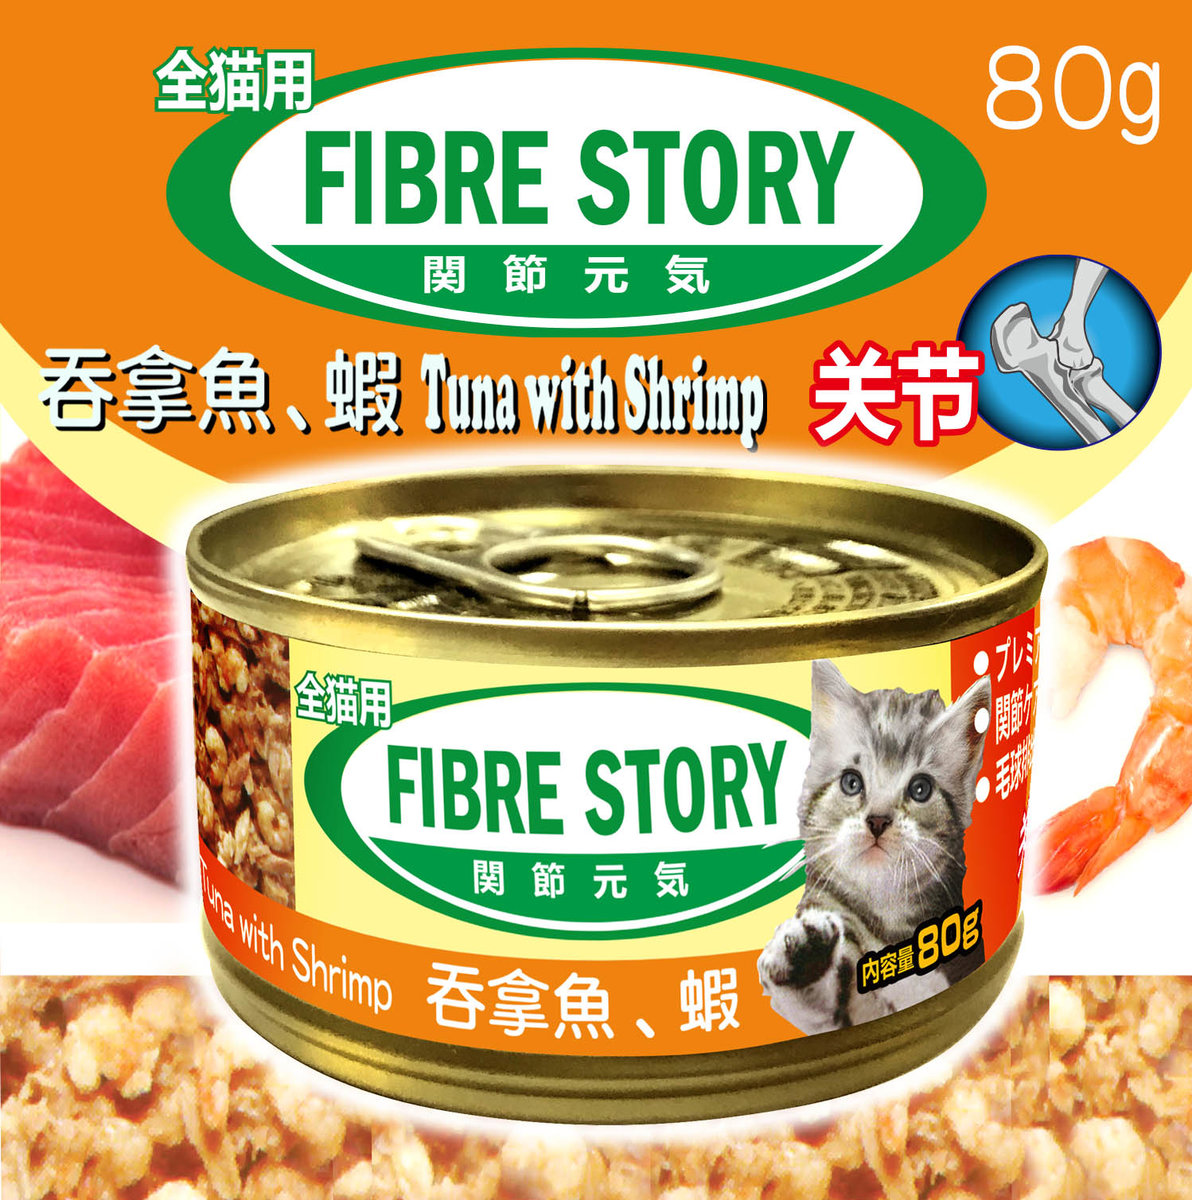 Fibre Story - (Joints) - Cat canned food - Tuna and Shrimp flavor 80g/canned